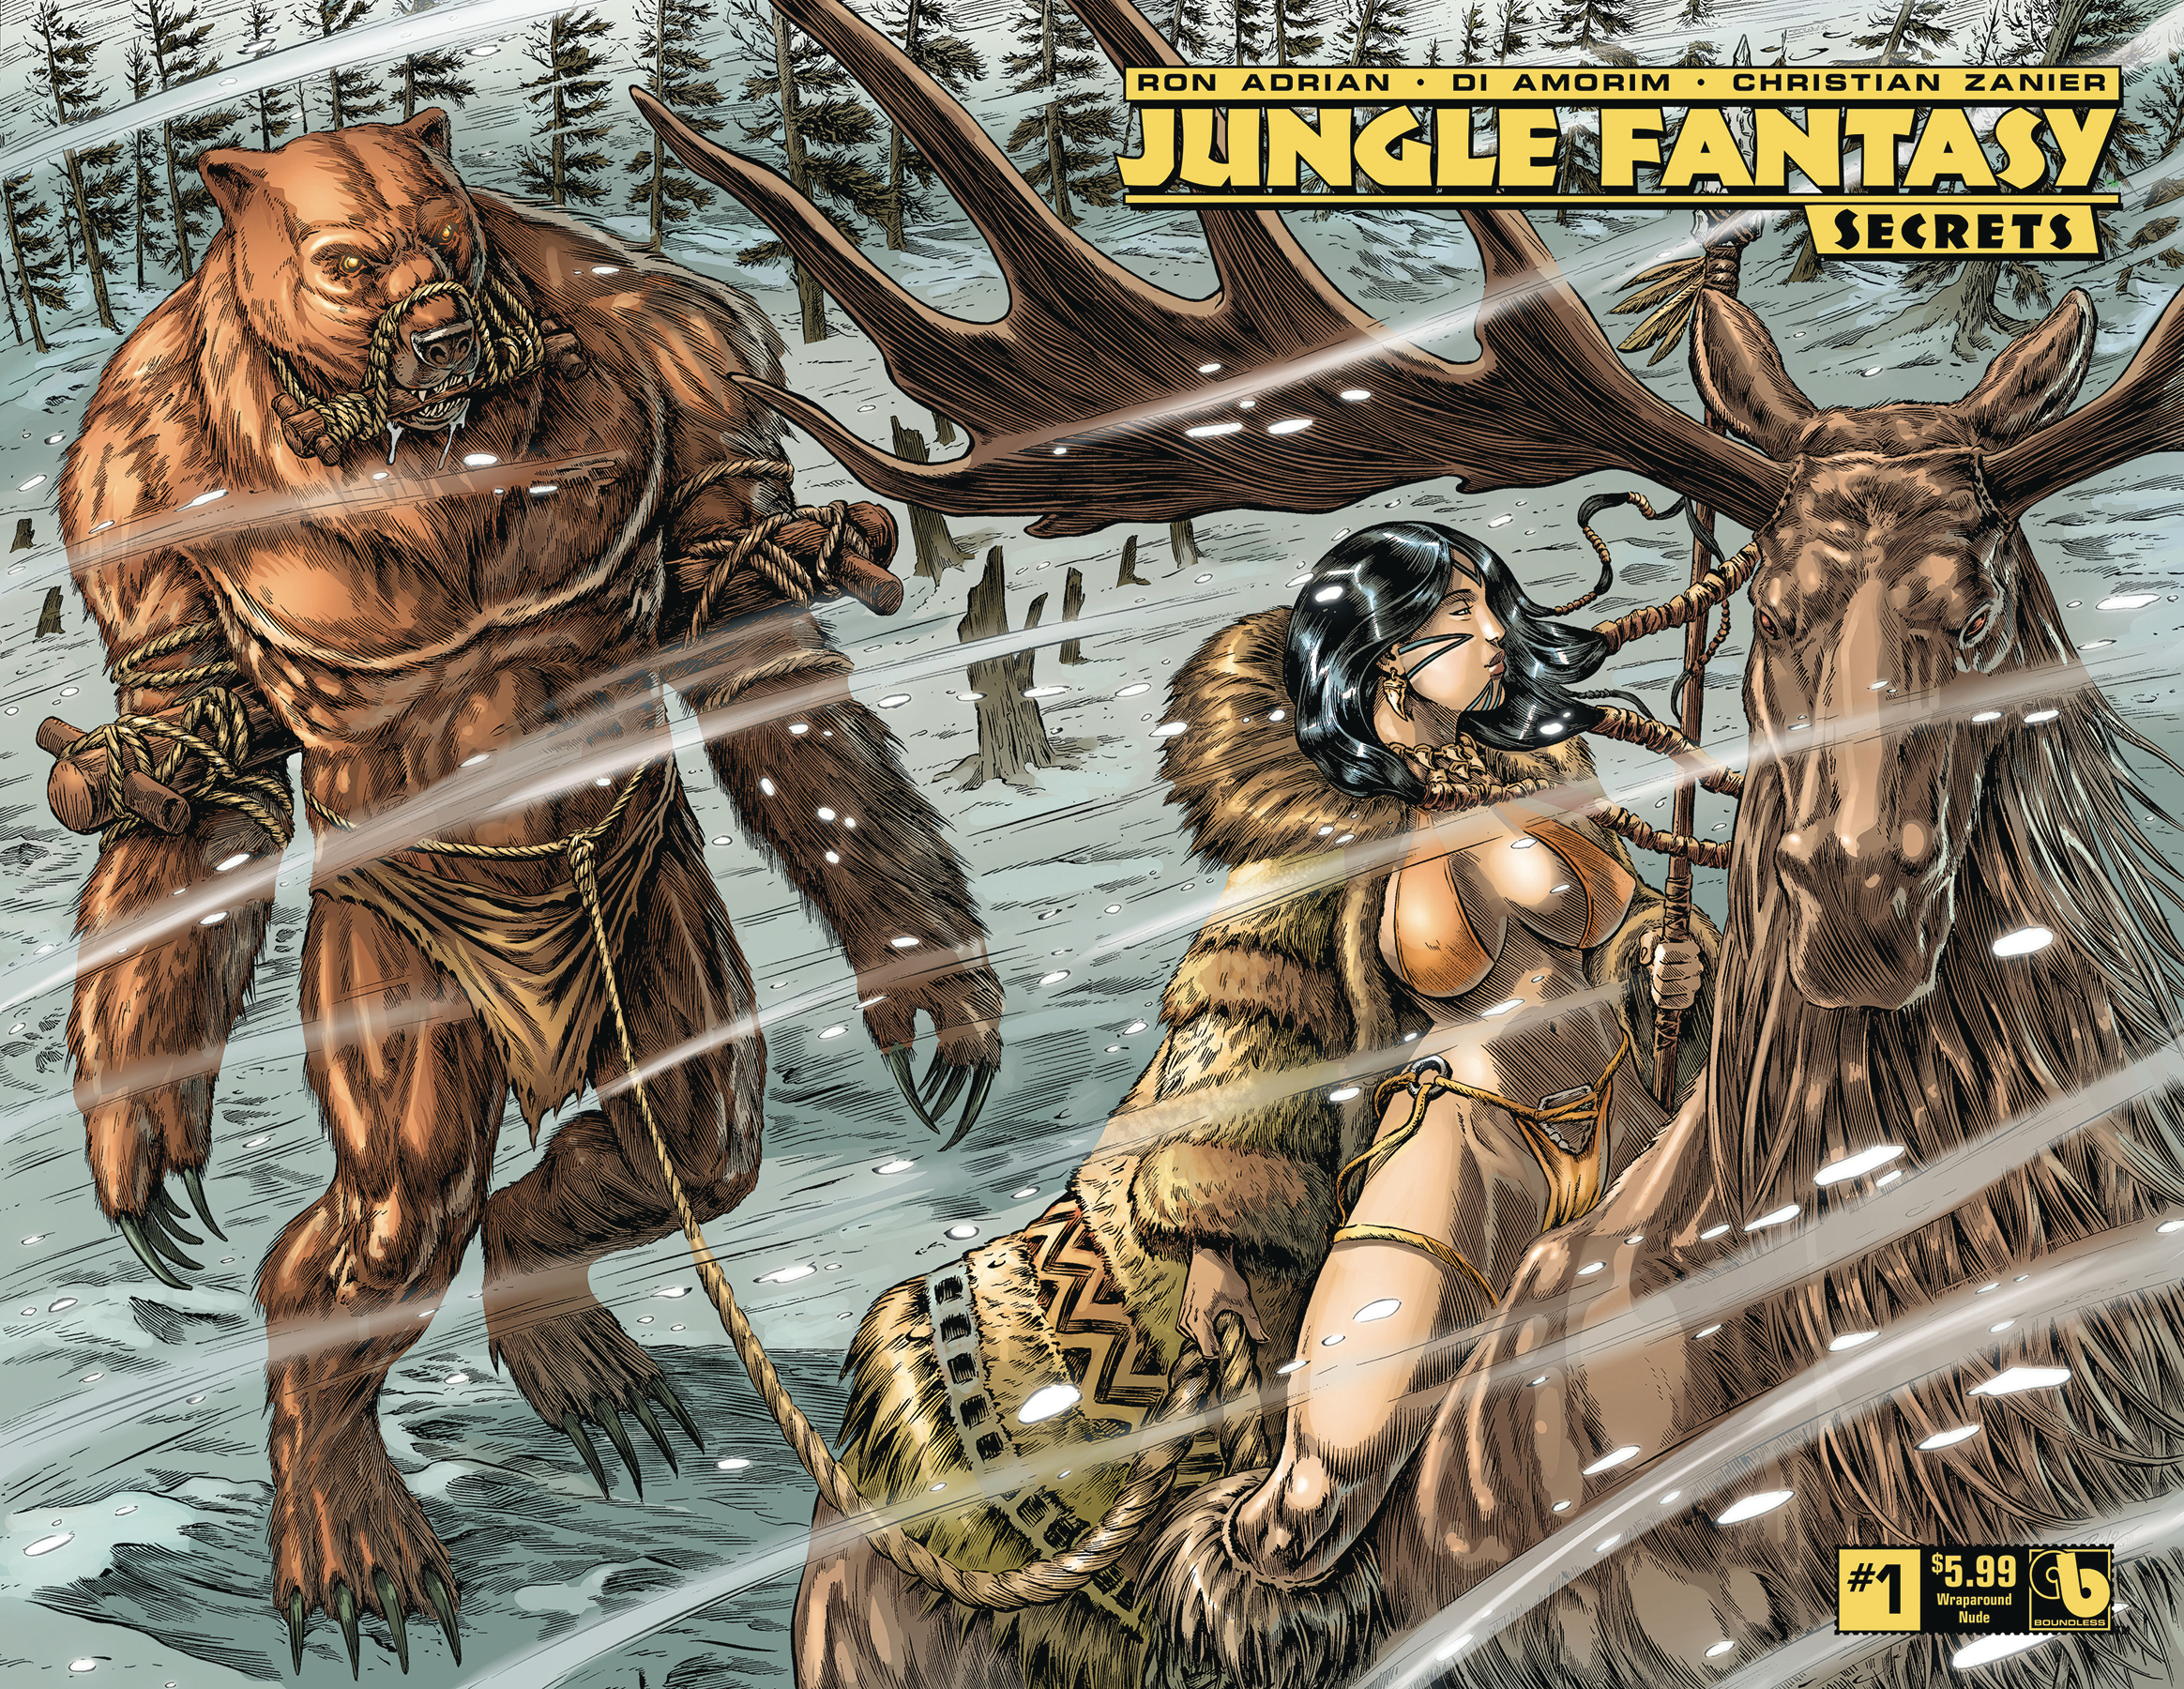 JUNGLE FANTASY SECRETS #1 WRAP (MR)